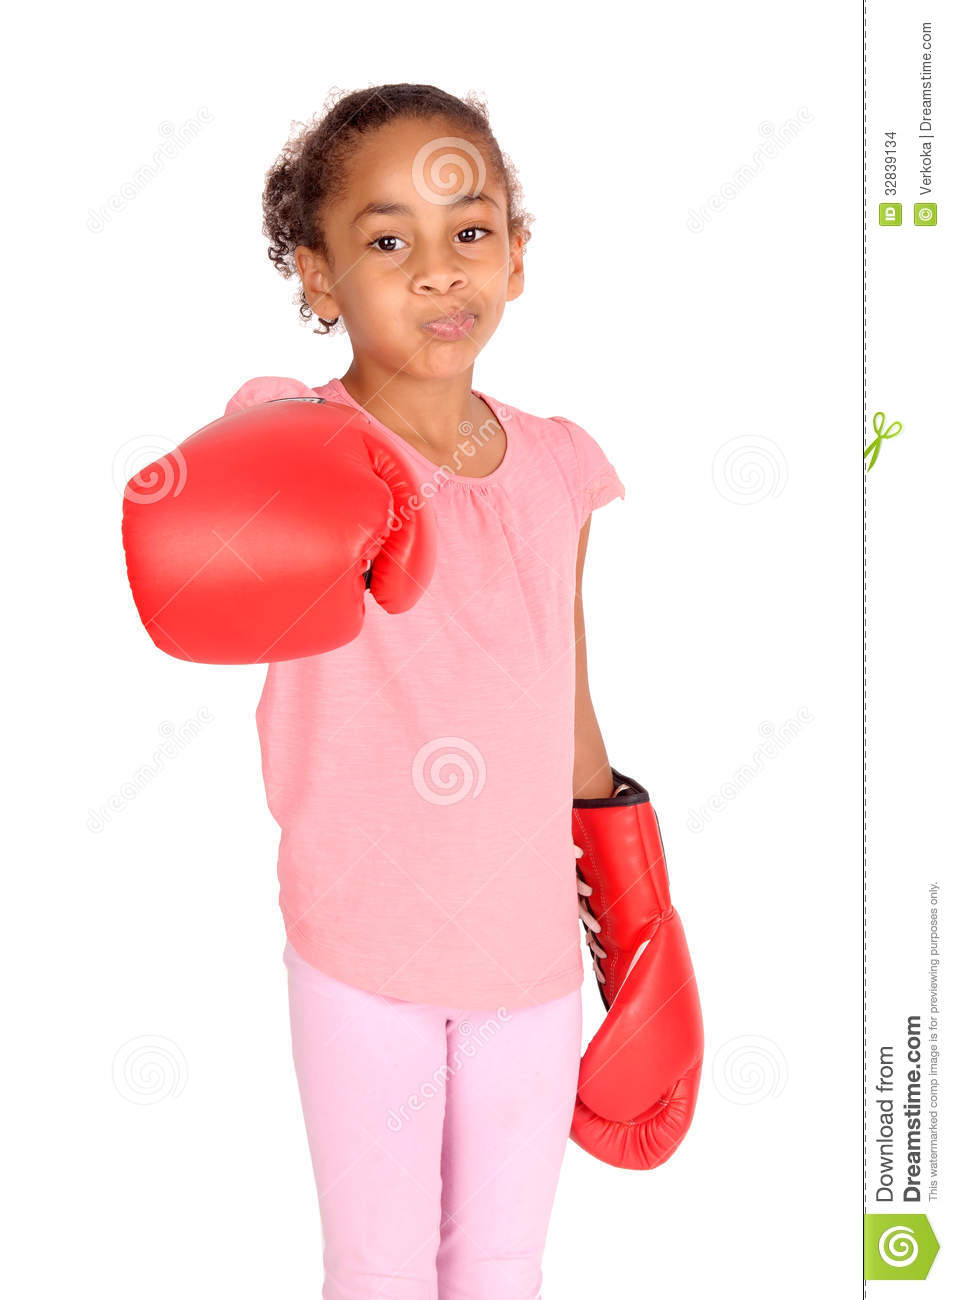 Little girl with boxing gloves.